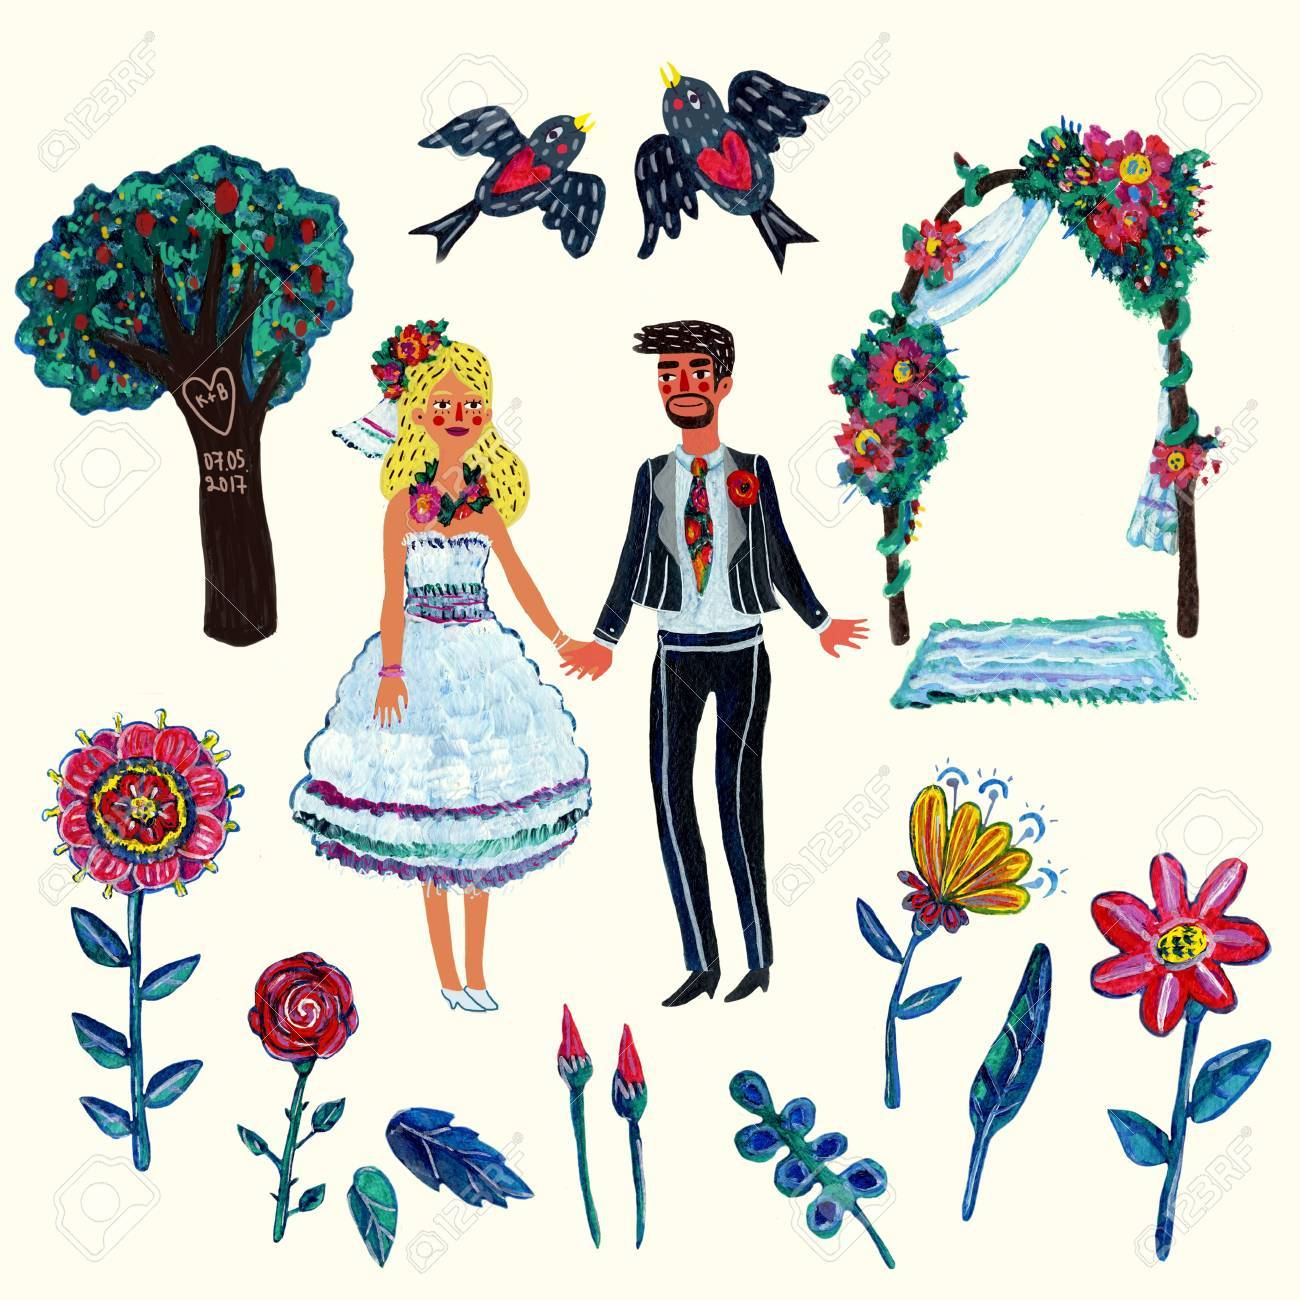 hight resolution of garden wedding clipart with bride groom two swallowes flowers leaves tree and arch isolated elements acrylic hand drawn illustration with some